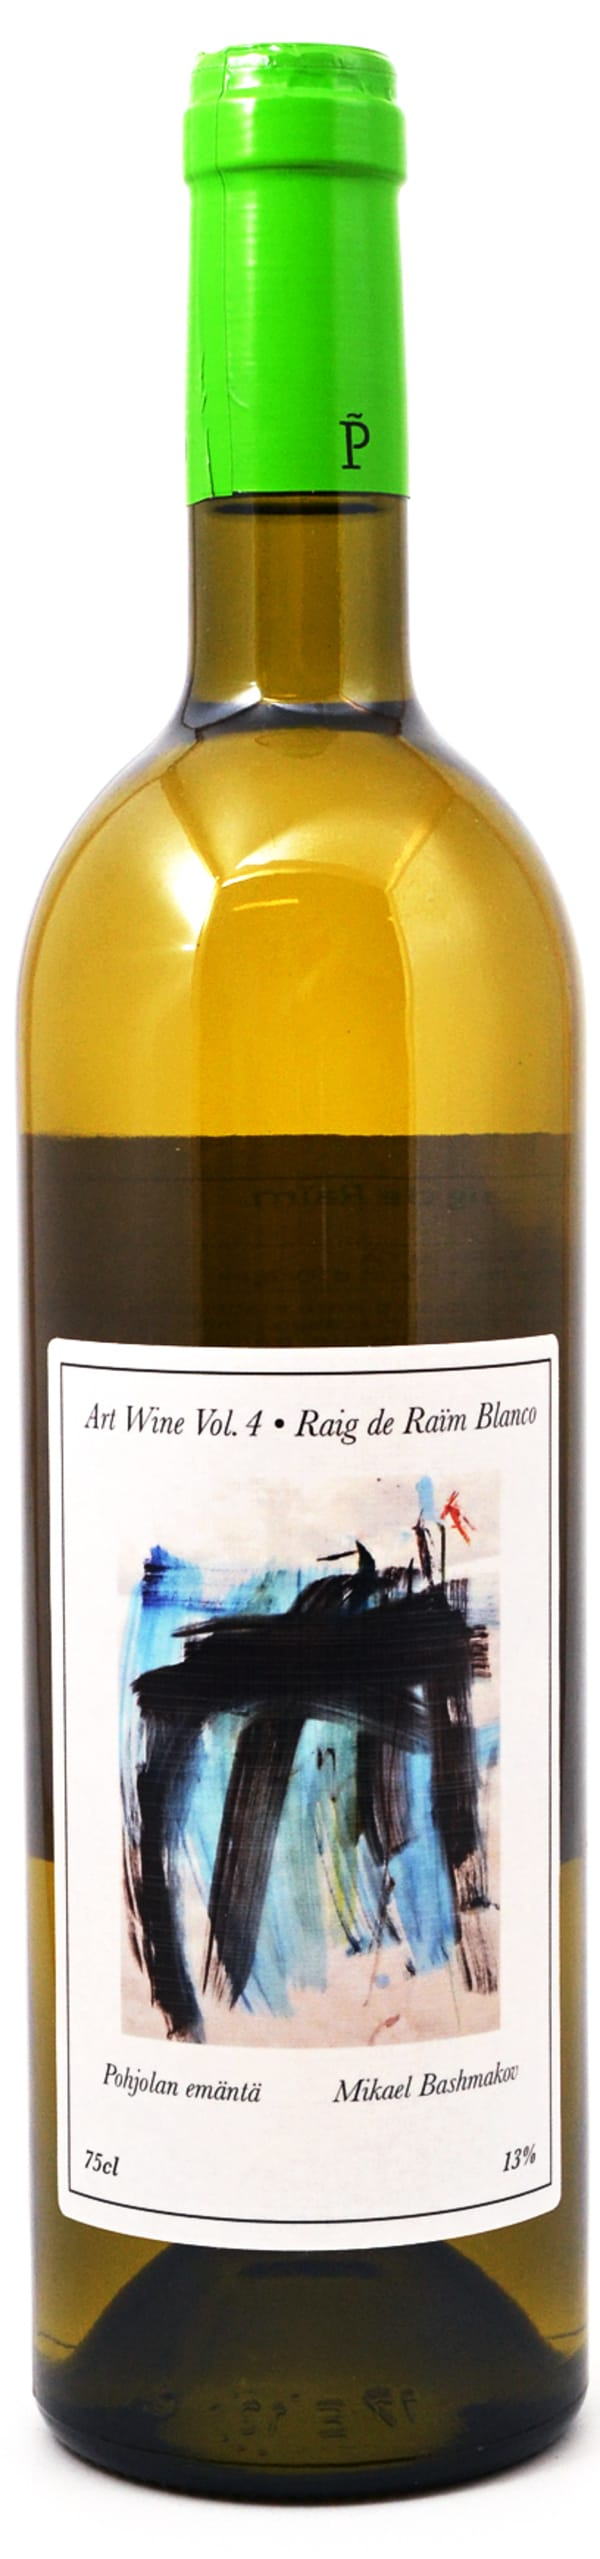 Raig de Raim Art Wine Vol. 4